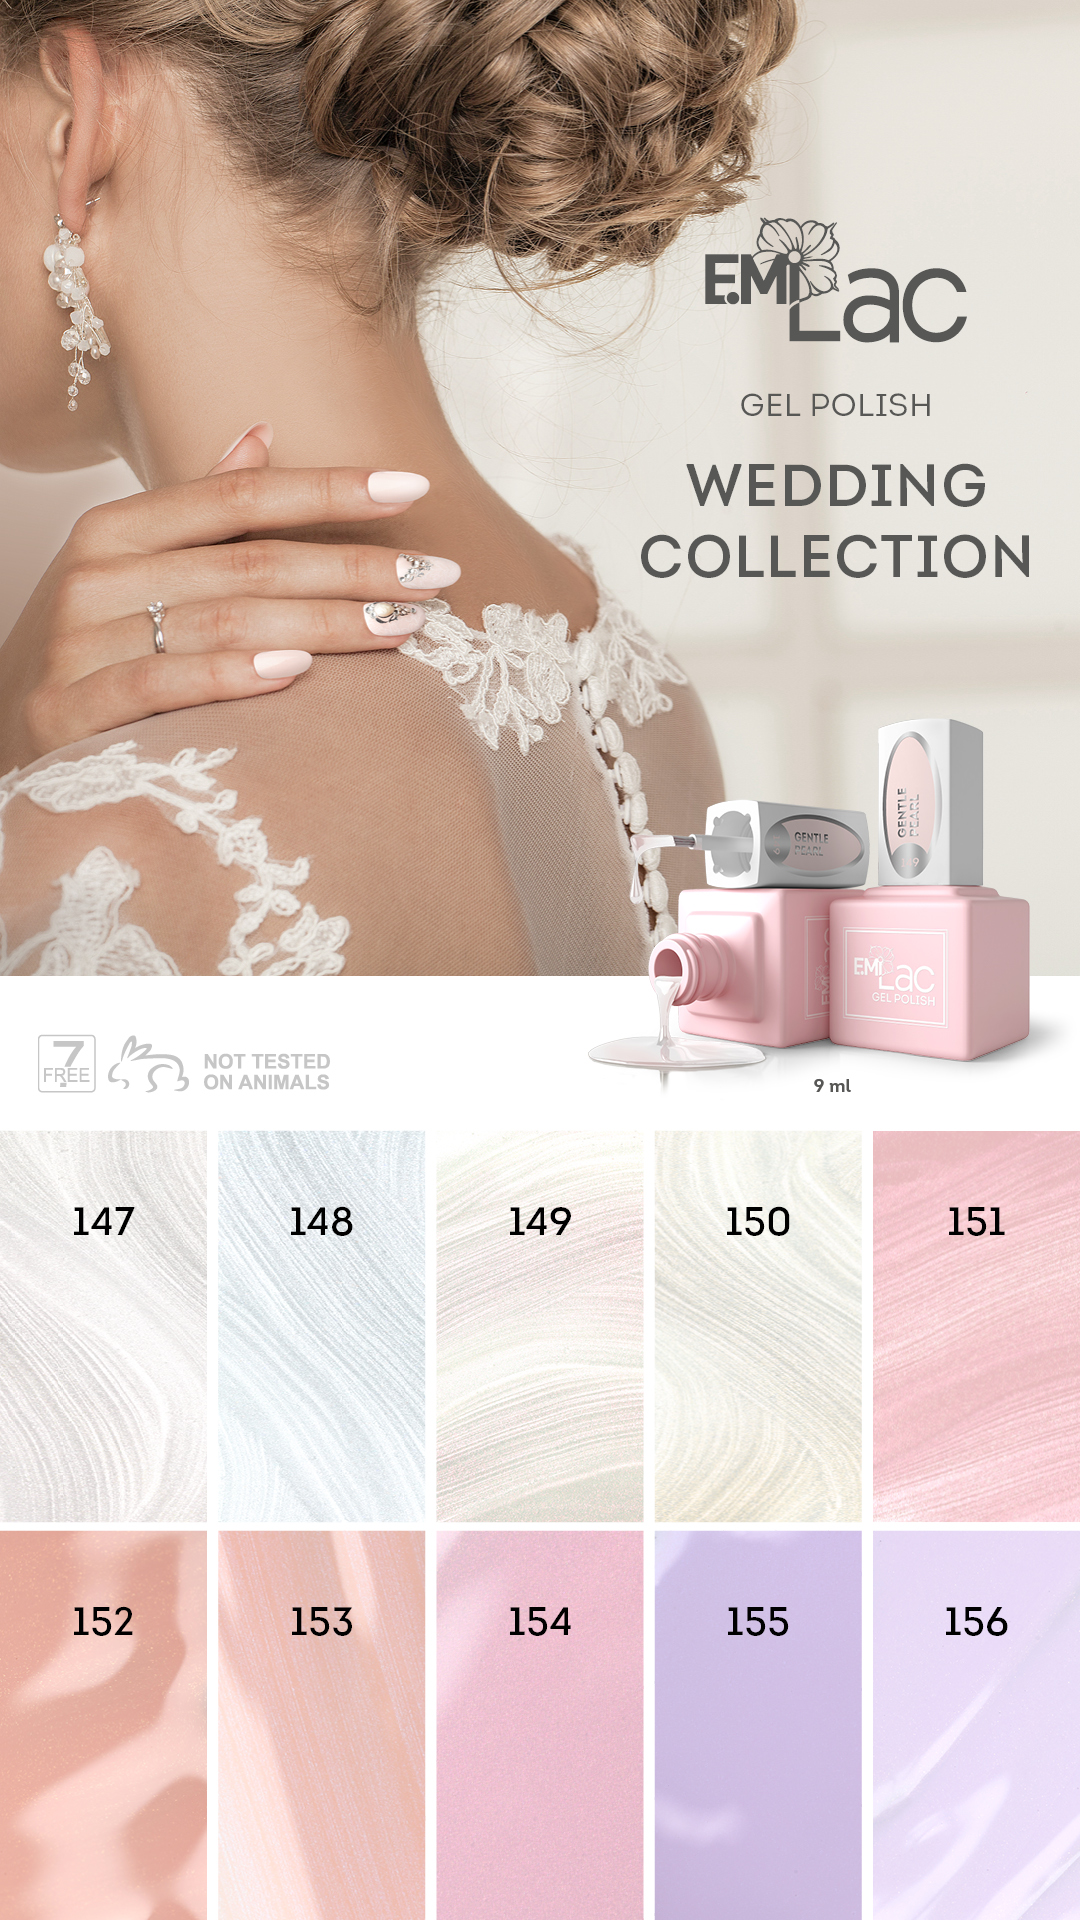 st_wedding collection_EN (002)